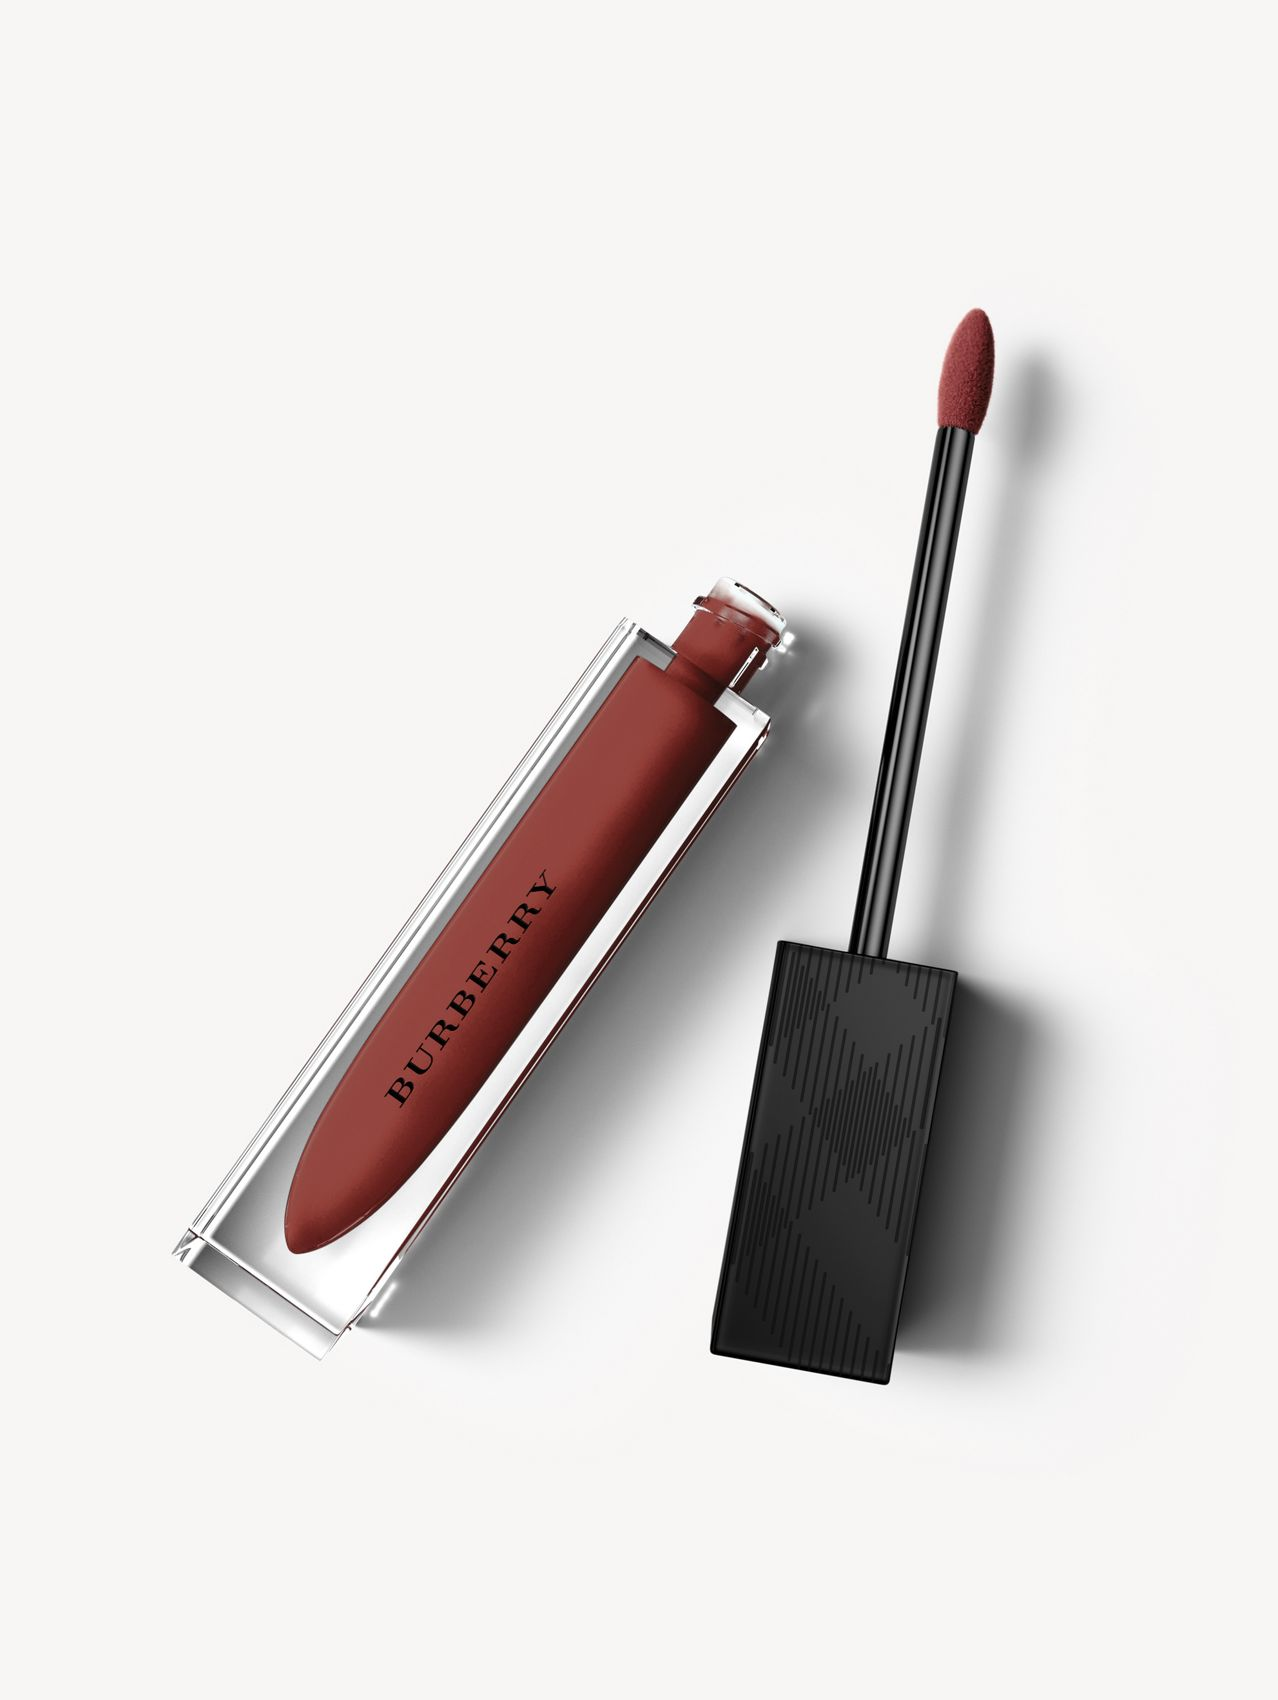 Burberry Kisses Lip Lacquer – Black Cherry No.57